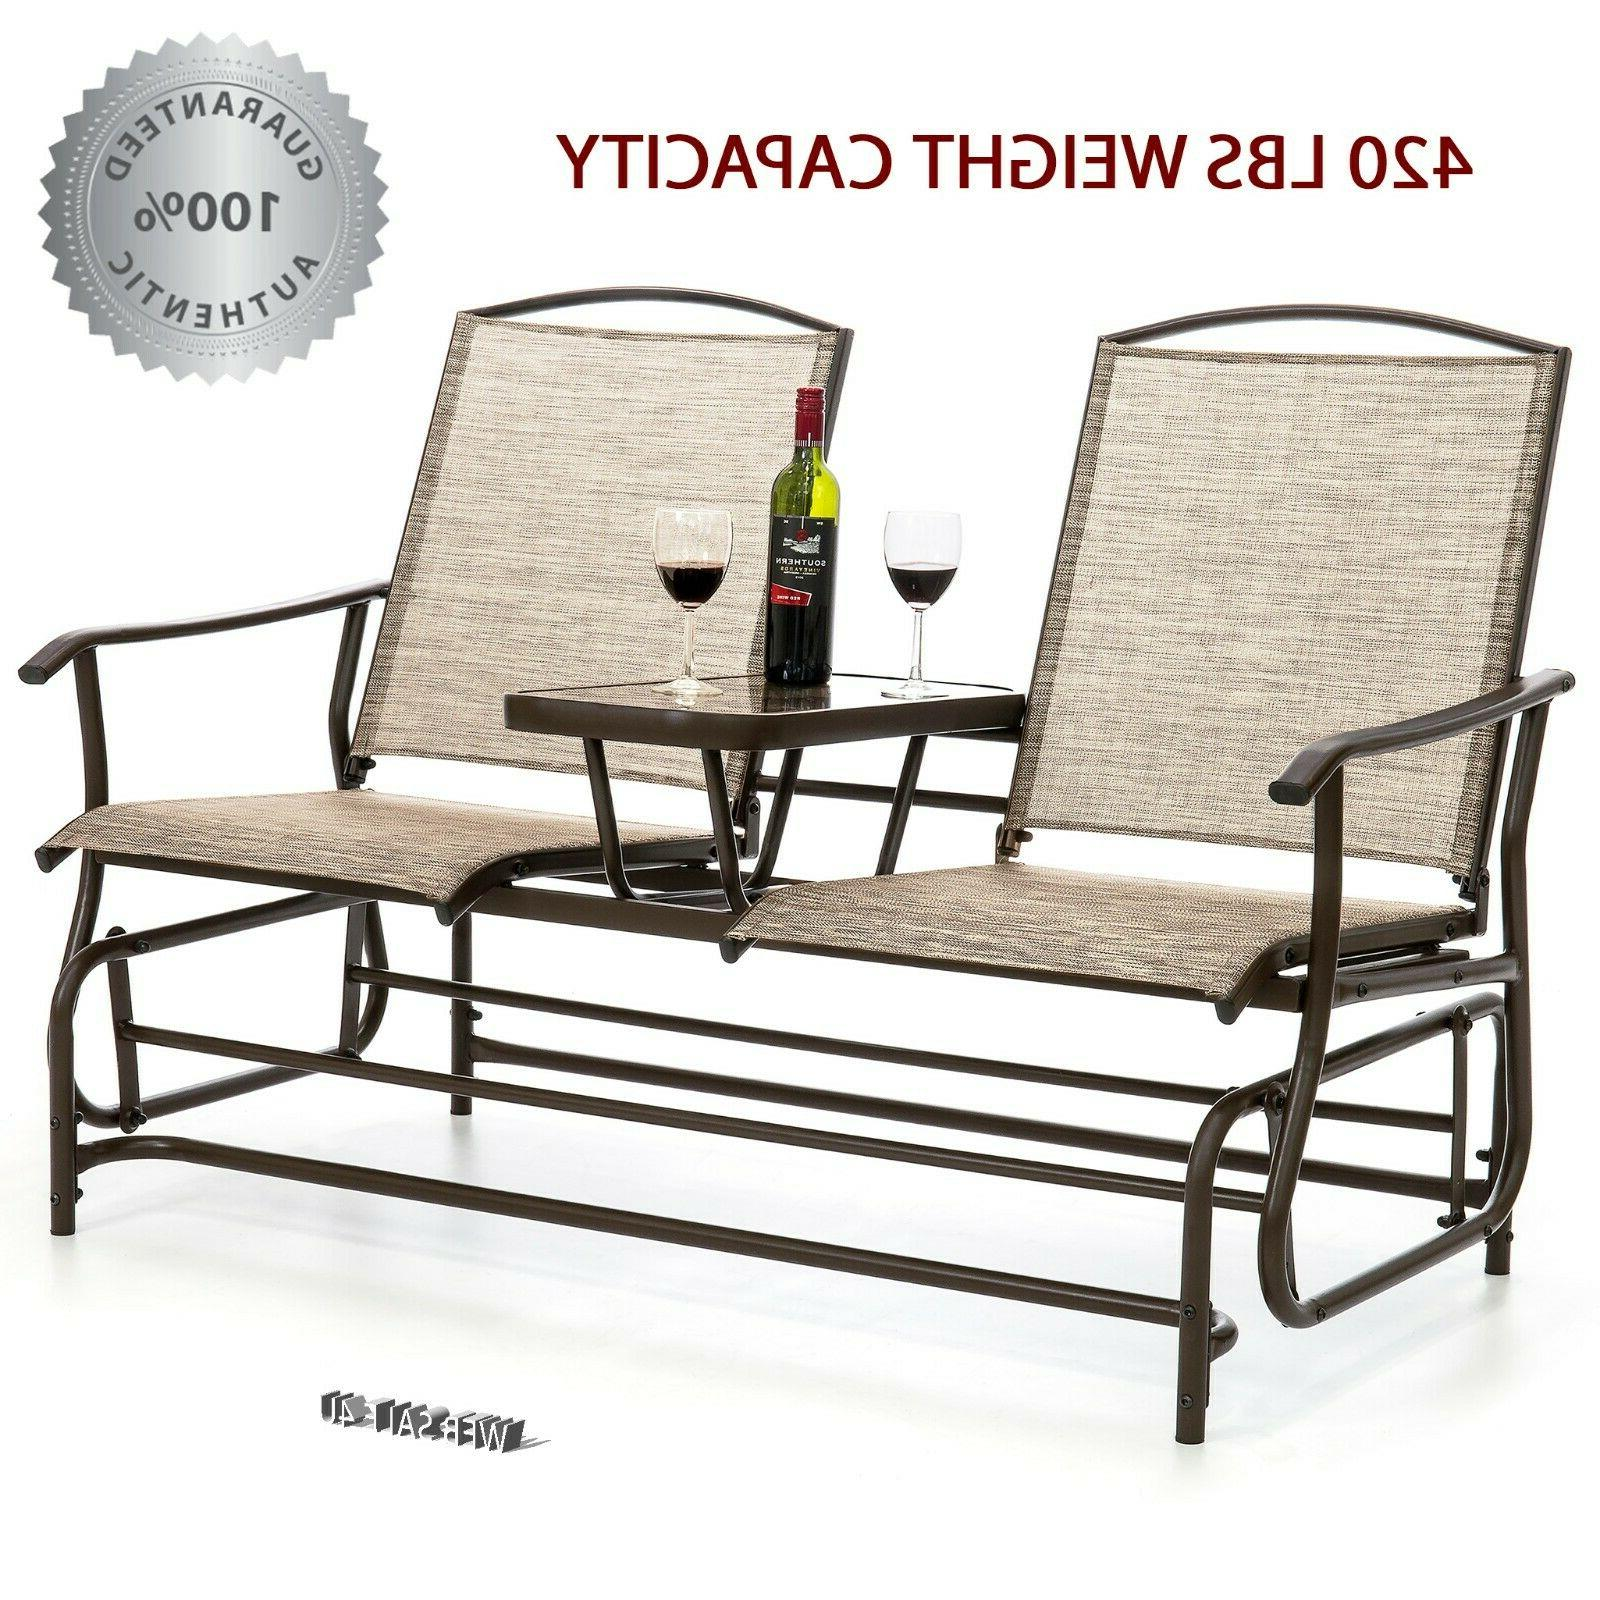 Outdoor Patio Glider Rocking Bench 2 Person Loveseat Table P